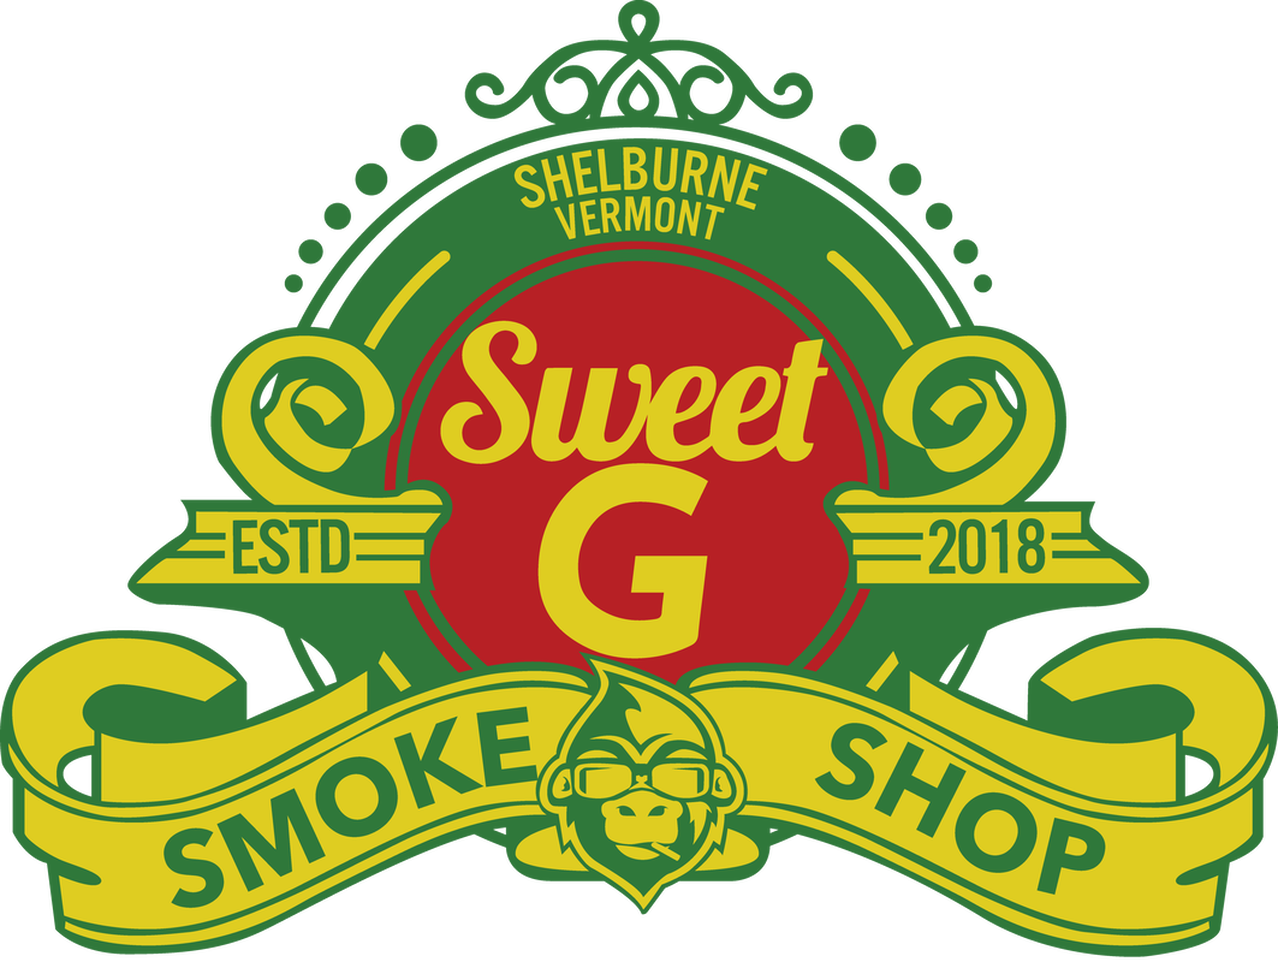 Sweet G's Smoke Shop